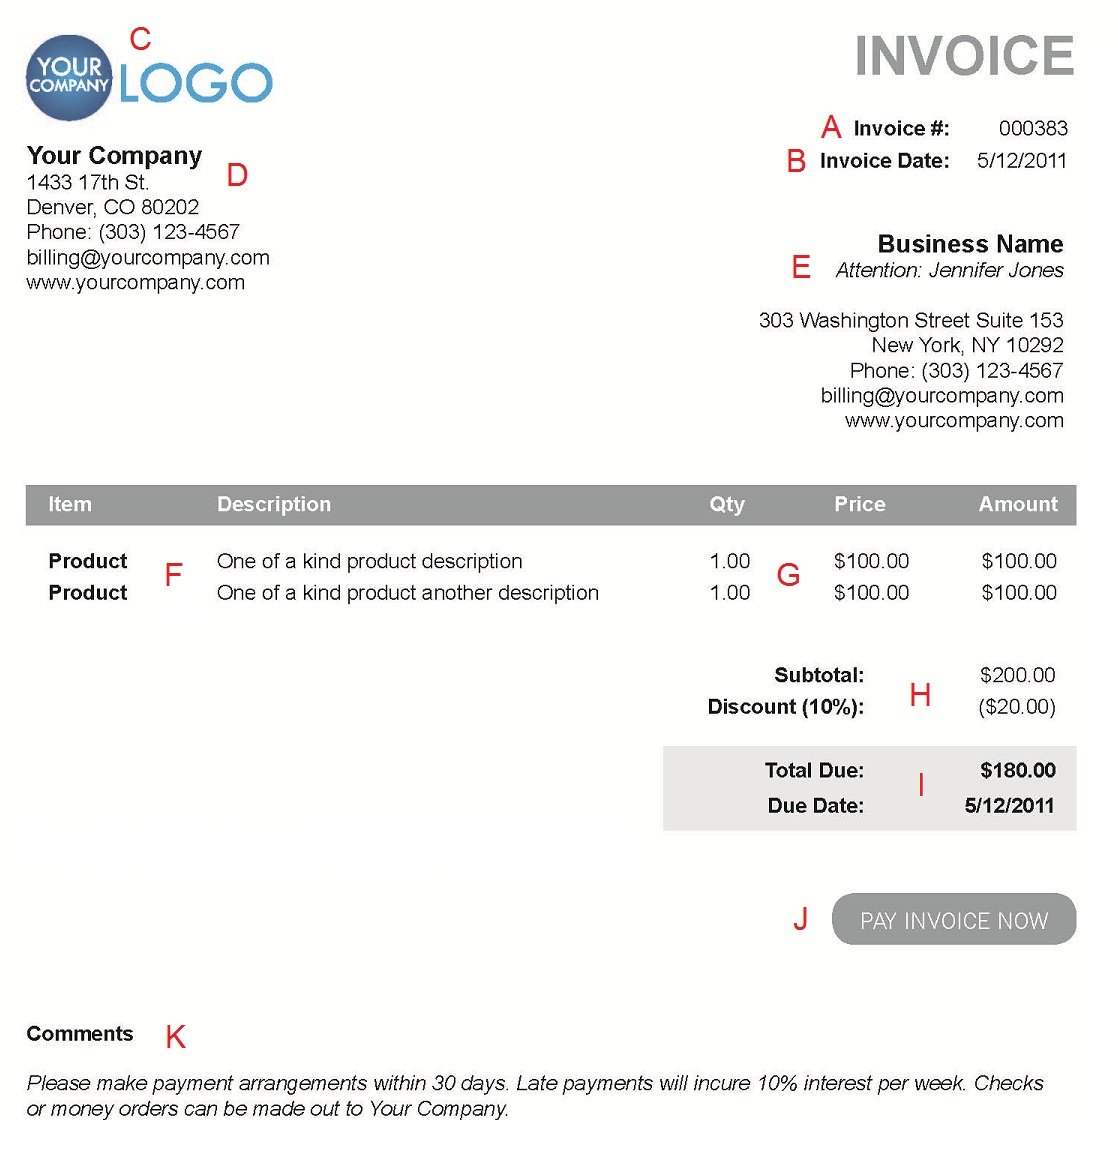 Aaaaeroincus  Remarkable The  Different Sections Of An Electronic Payment Invoice With Great A  With Awesome Plan Canada Tax Receipt Also Sample Receipts For Payment In Addition Acknowledgment Receipt Letter And Tneb Payment Receipt As Well As Goodwill Receipts Tax Deductible Additionally Rental Receipts Pdf From Paysimplecom With Aaaaeroincus  Great The  Different Sections Of An Electronic Payment Invoice With Awesome A  And Remarkable Plan Canada Tax Receipt Also Sample Receipts For Payment In Addition Acknowledgment Receipt Letter From Paysimplecom